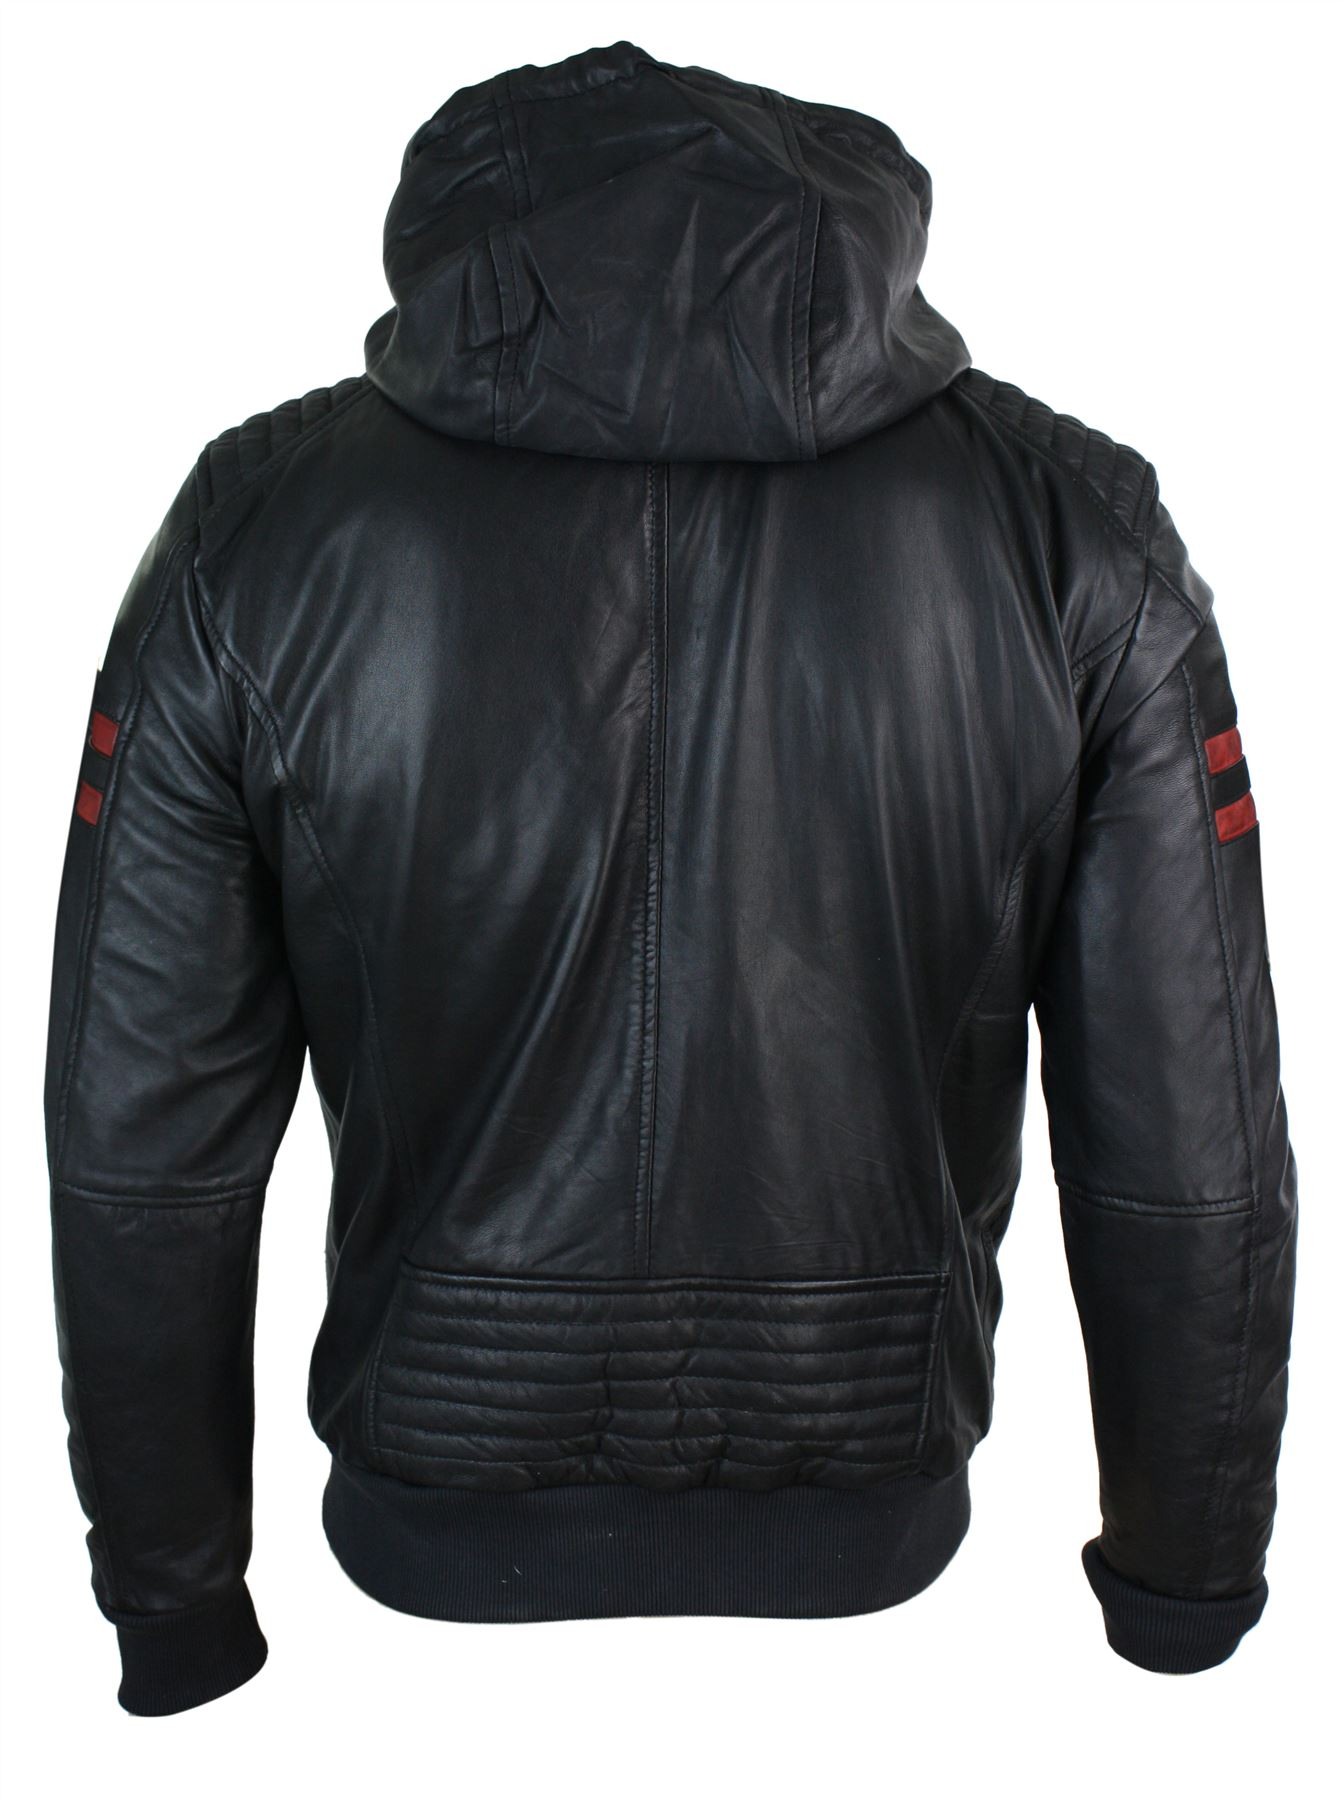 Mens-Black-Hood-Real-Leather-Bomber-Jacket-Red-Stripes-Quilted-Slim-Fit-Casual miniature 7